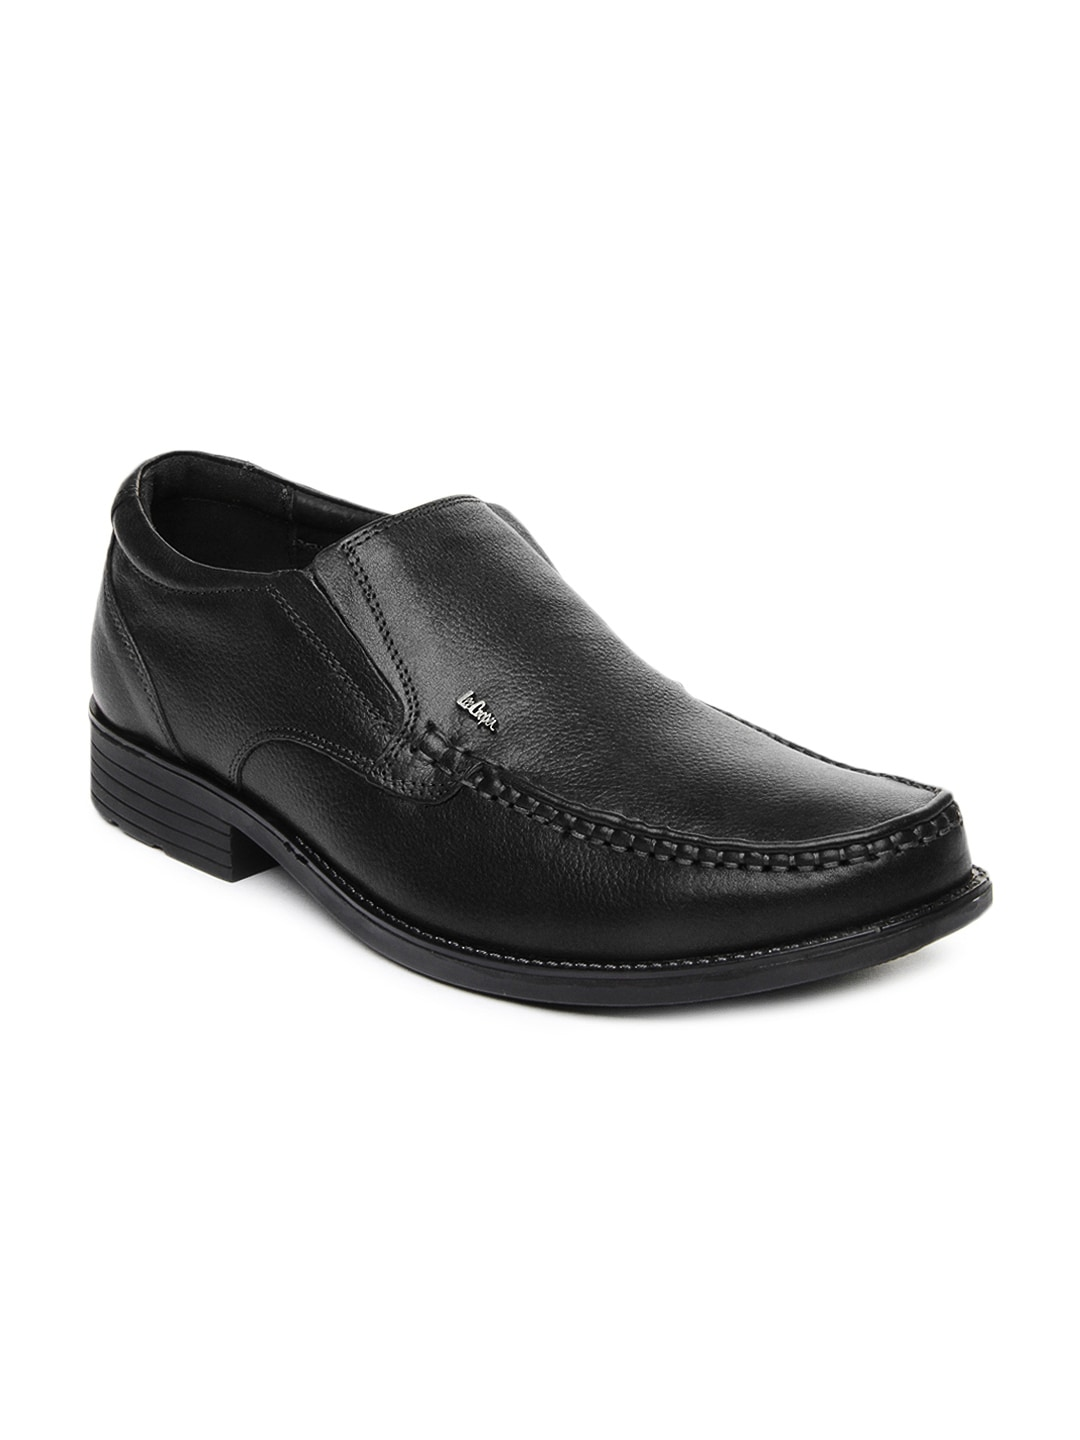 cooper black leather semi formal shoes